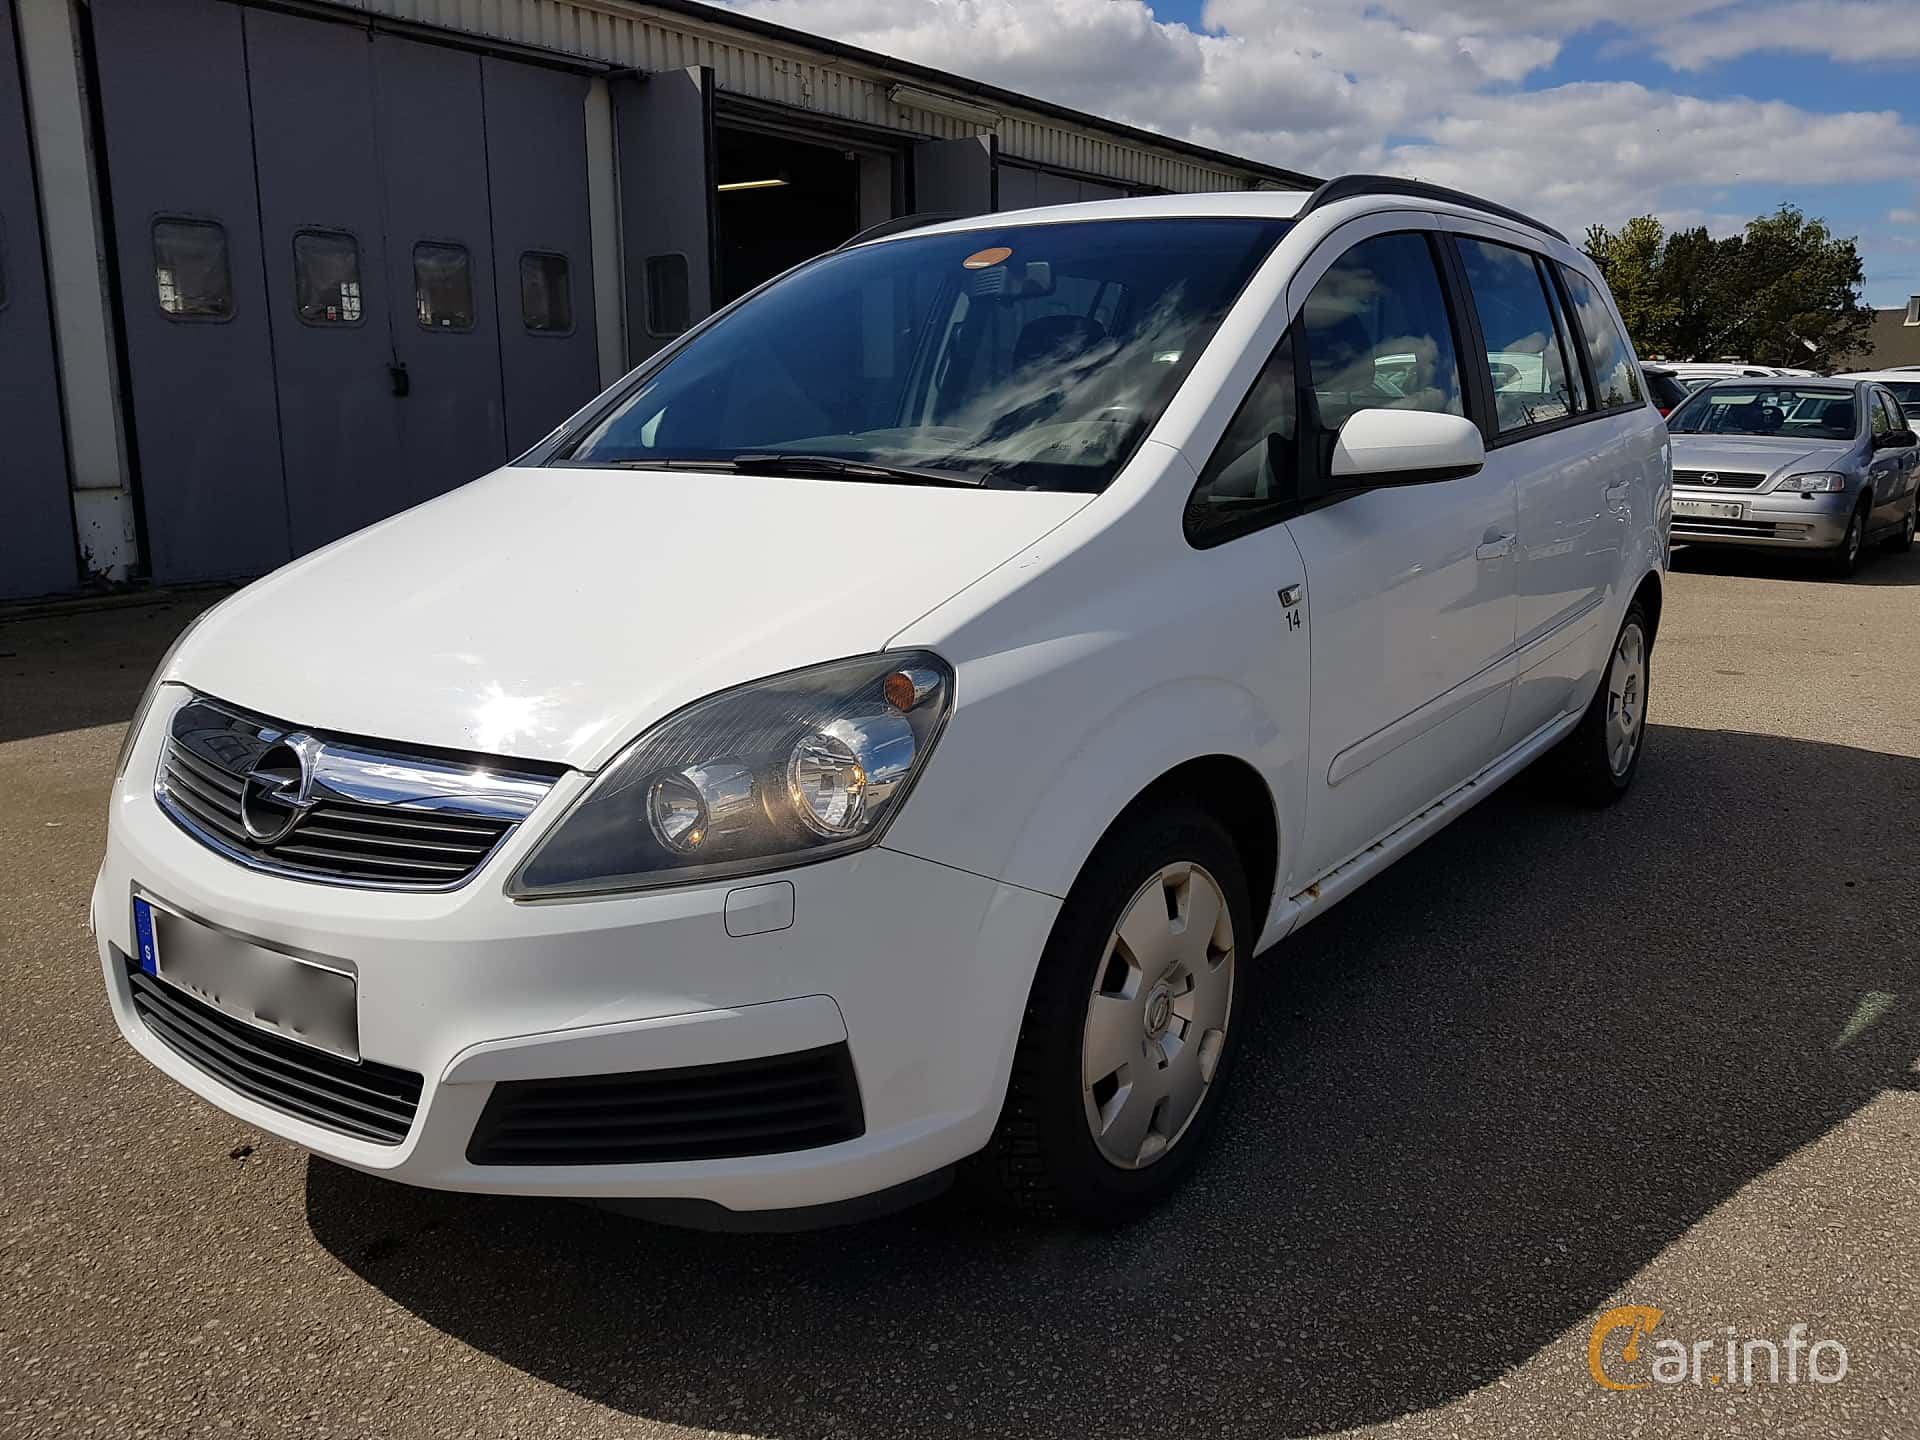 Opel Zafira 1.6 CNG ecoFLEX  Manual, 94hp, 2006